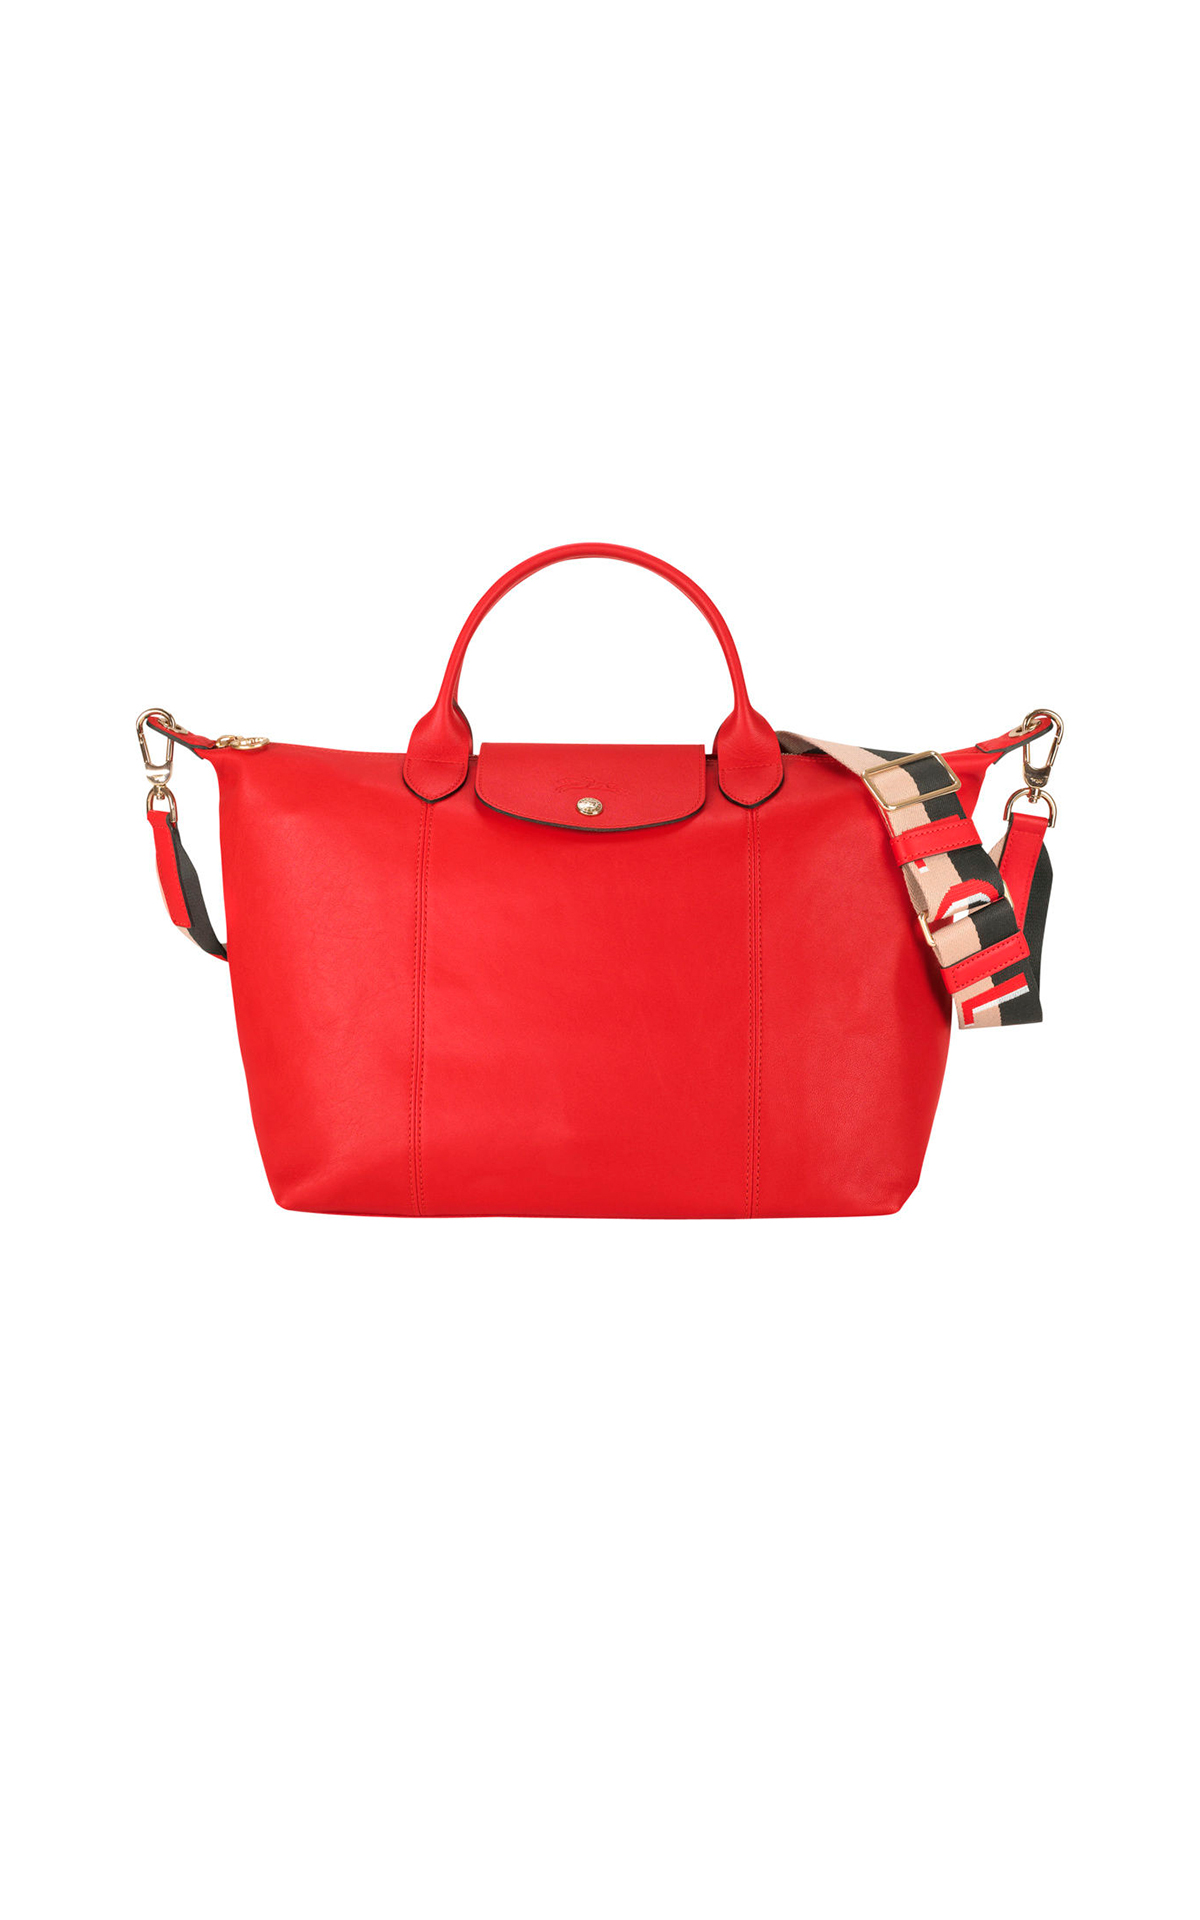 Red Pliage bag Longchamp